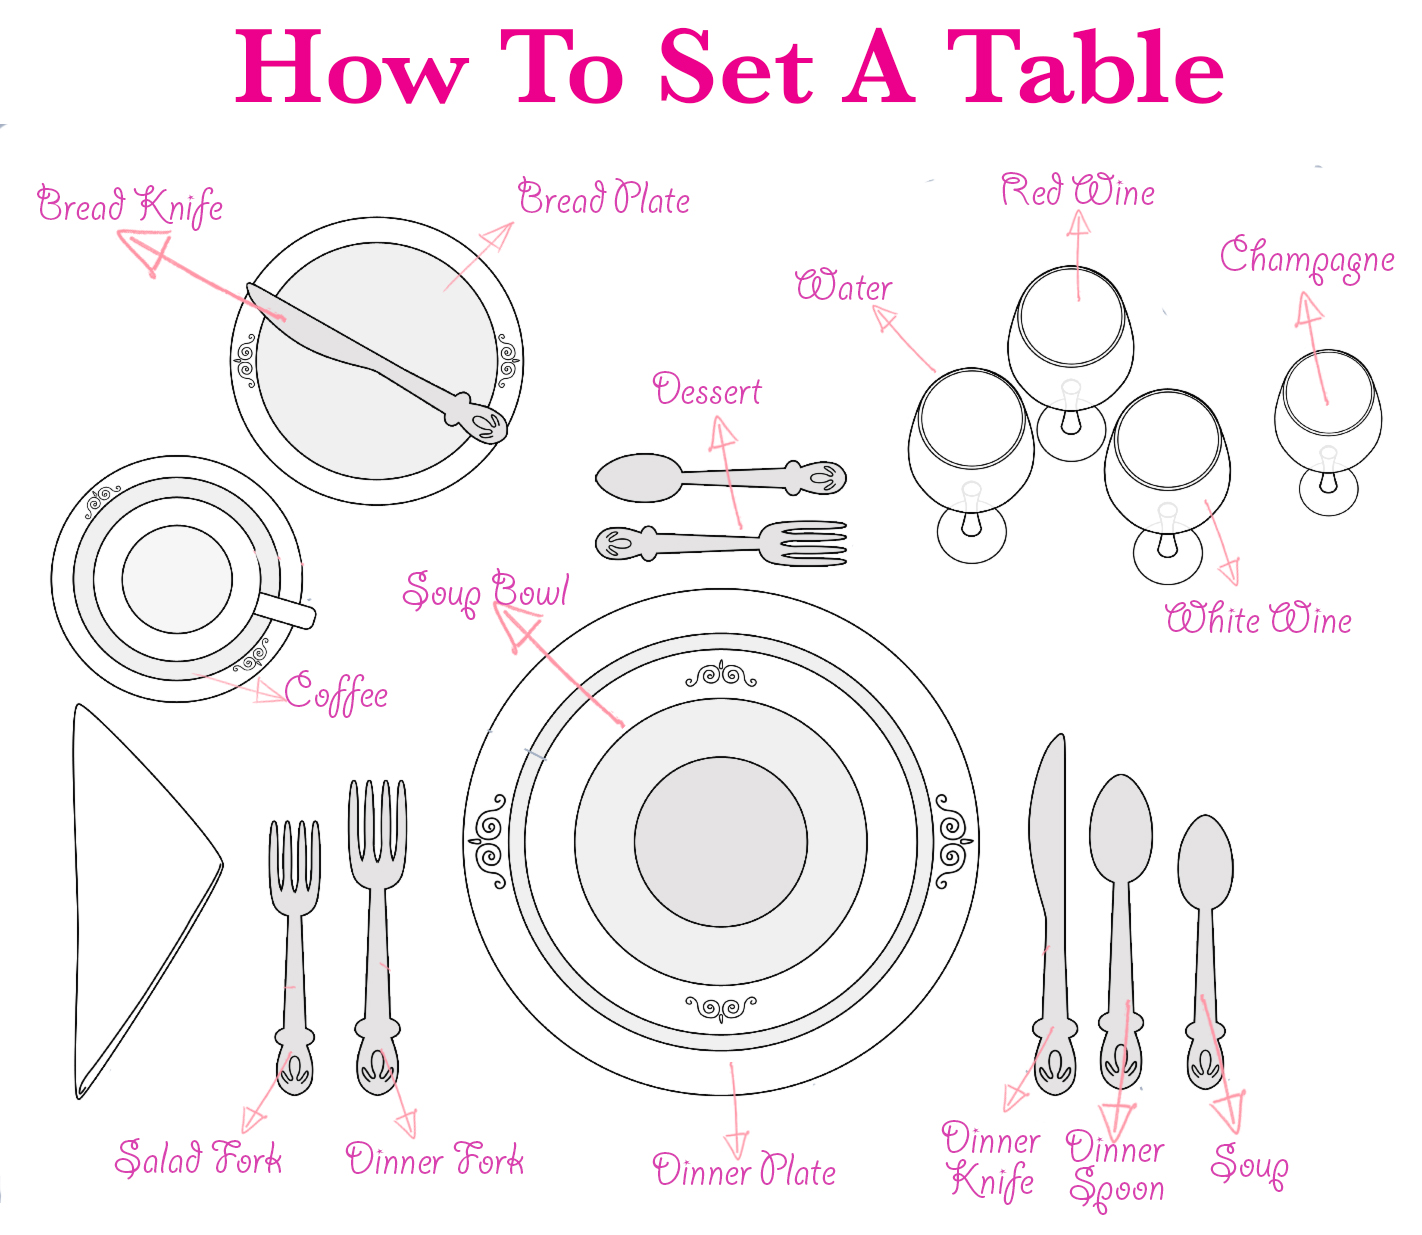 hight resolution of how to set a table setting ideas inspiration pinterest dinner formal shop room ideas forks knives